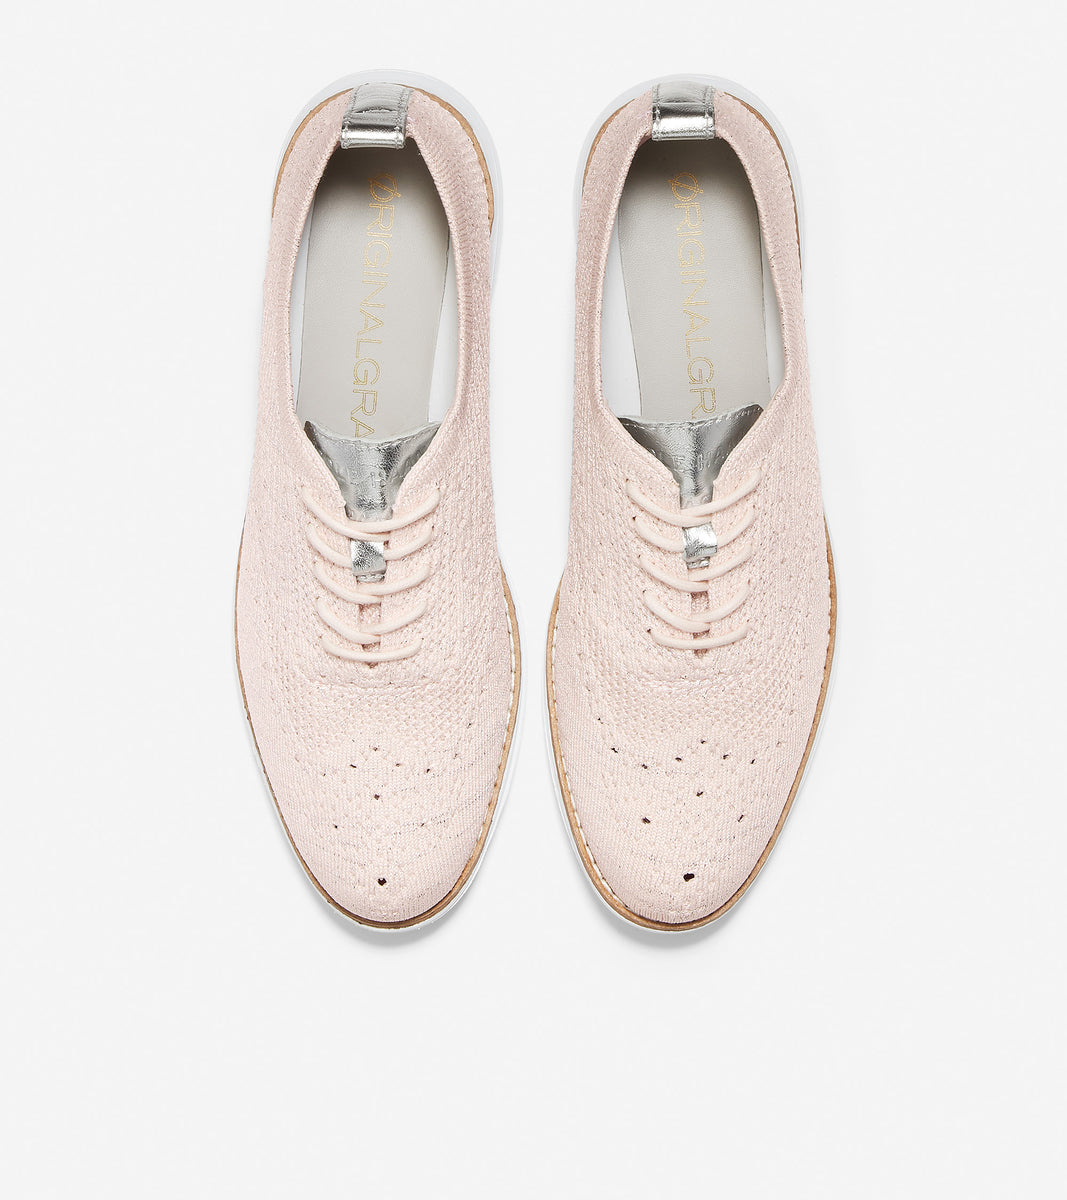 ØriginalGrand Wingtip Oxford¬¨¬®'Äö√тĆ